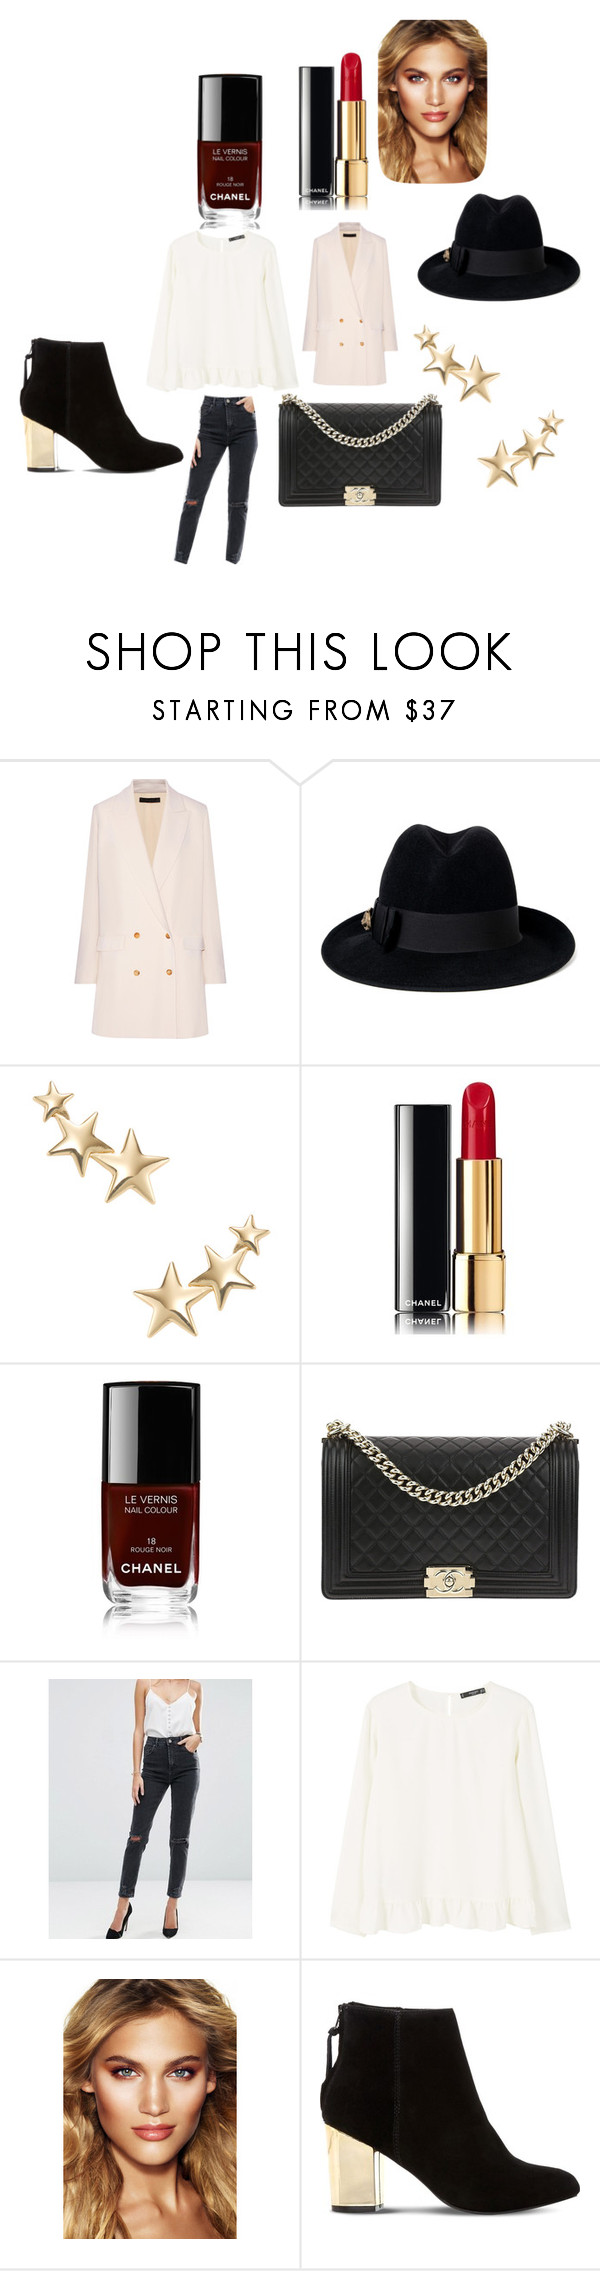 """""""Untitled #1251"""" by alessiaaaaaaaaa ❤ liked on Polyvore featuring The Row, Gucci, Kenneth Jay Lane, Chanel, ASOS, MANGO, Charlotte Tilbury and Steve Madden"""